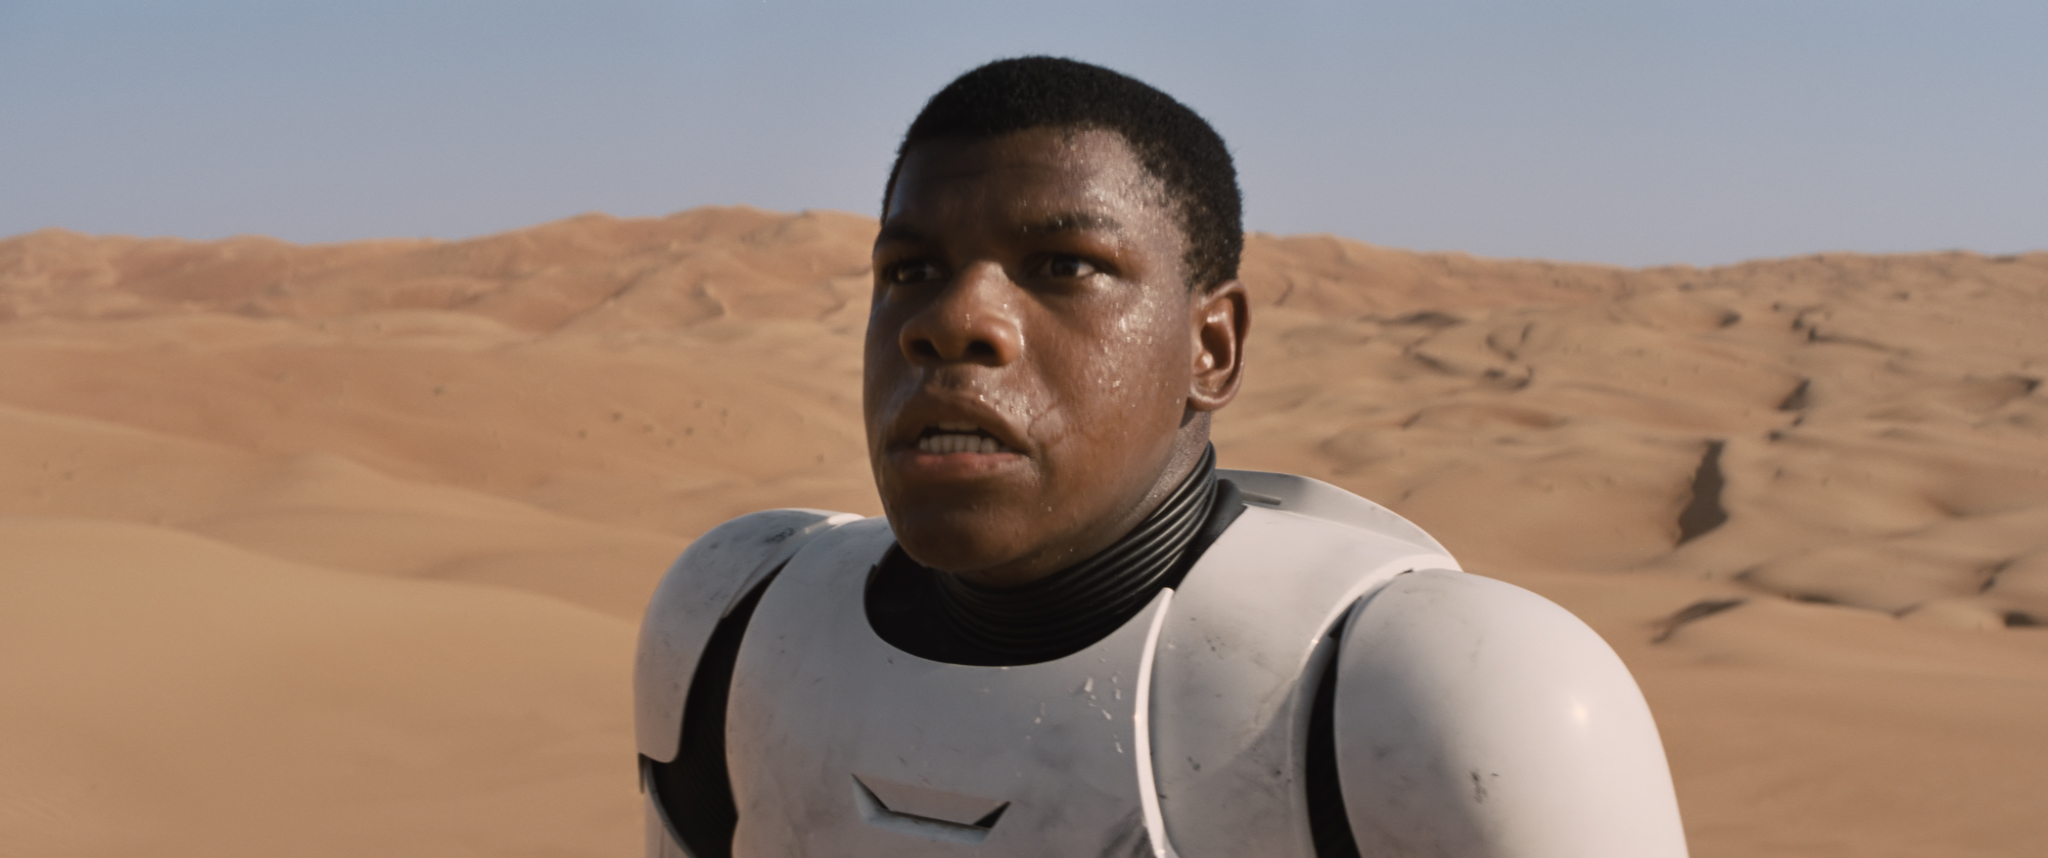 John Boyega in Star Wars: The Force Awakens.